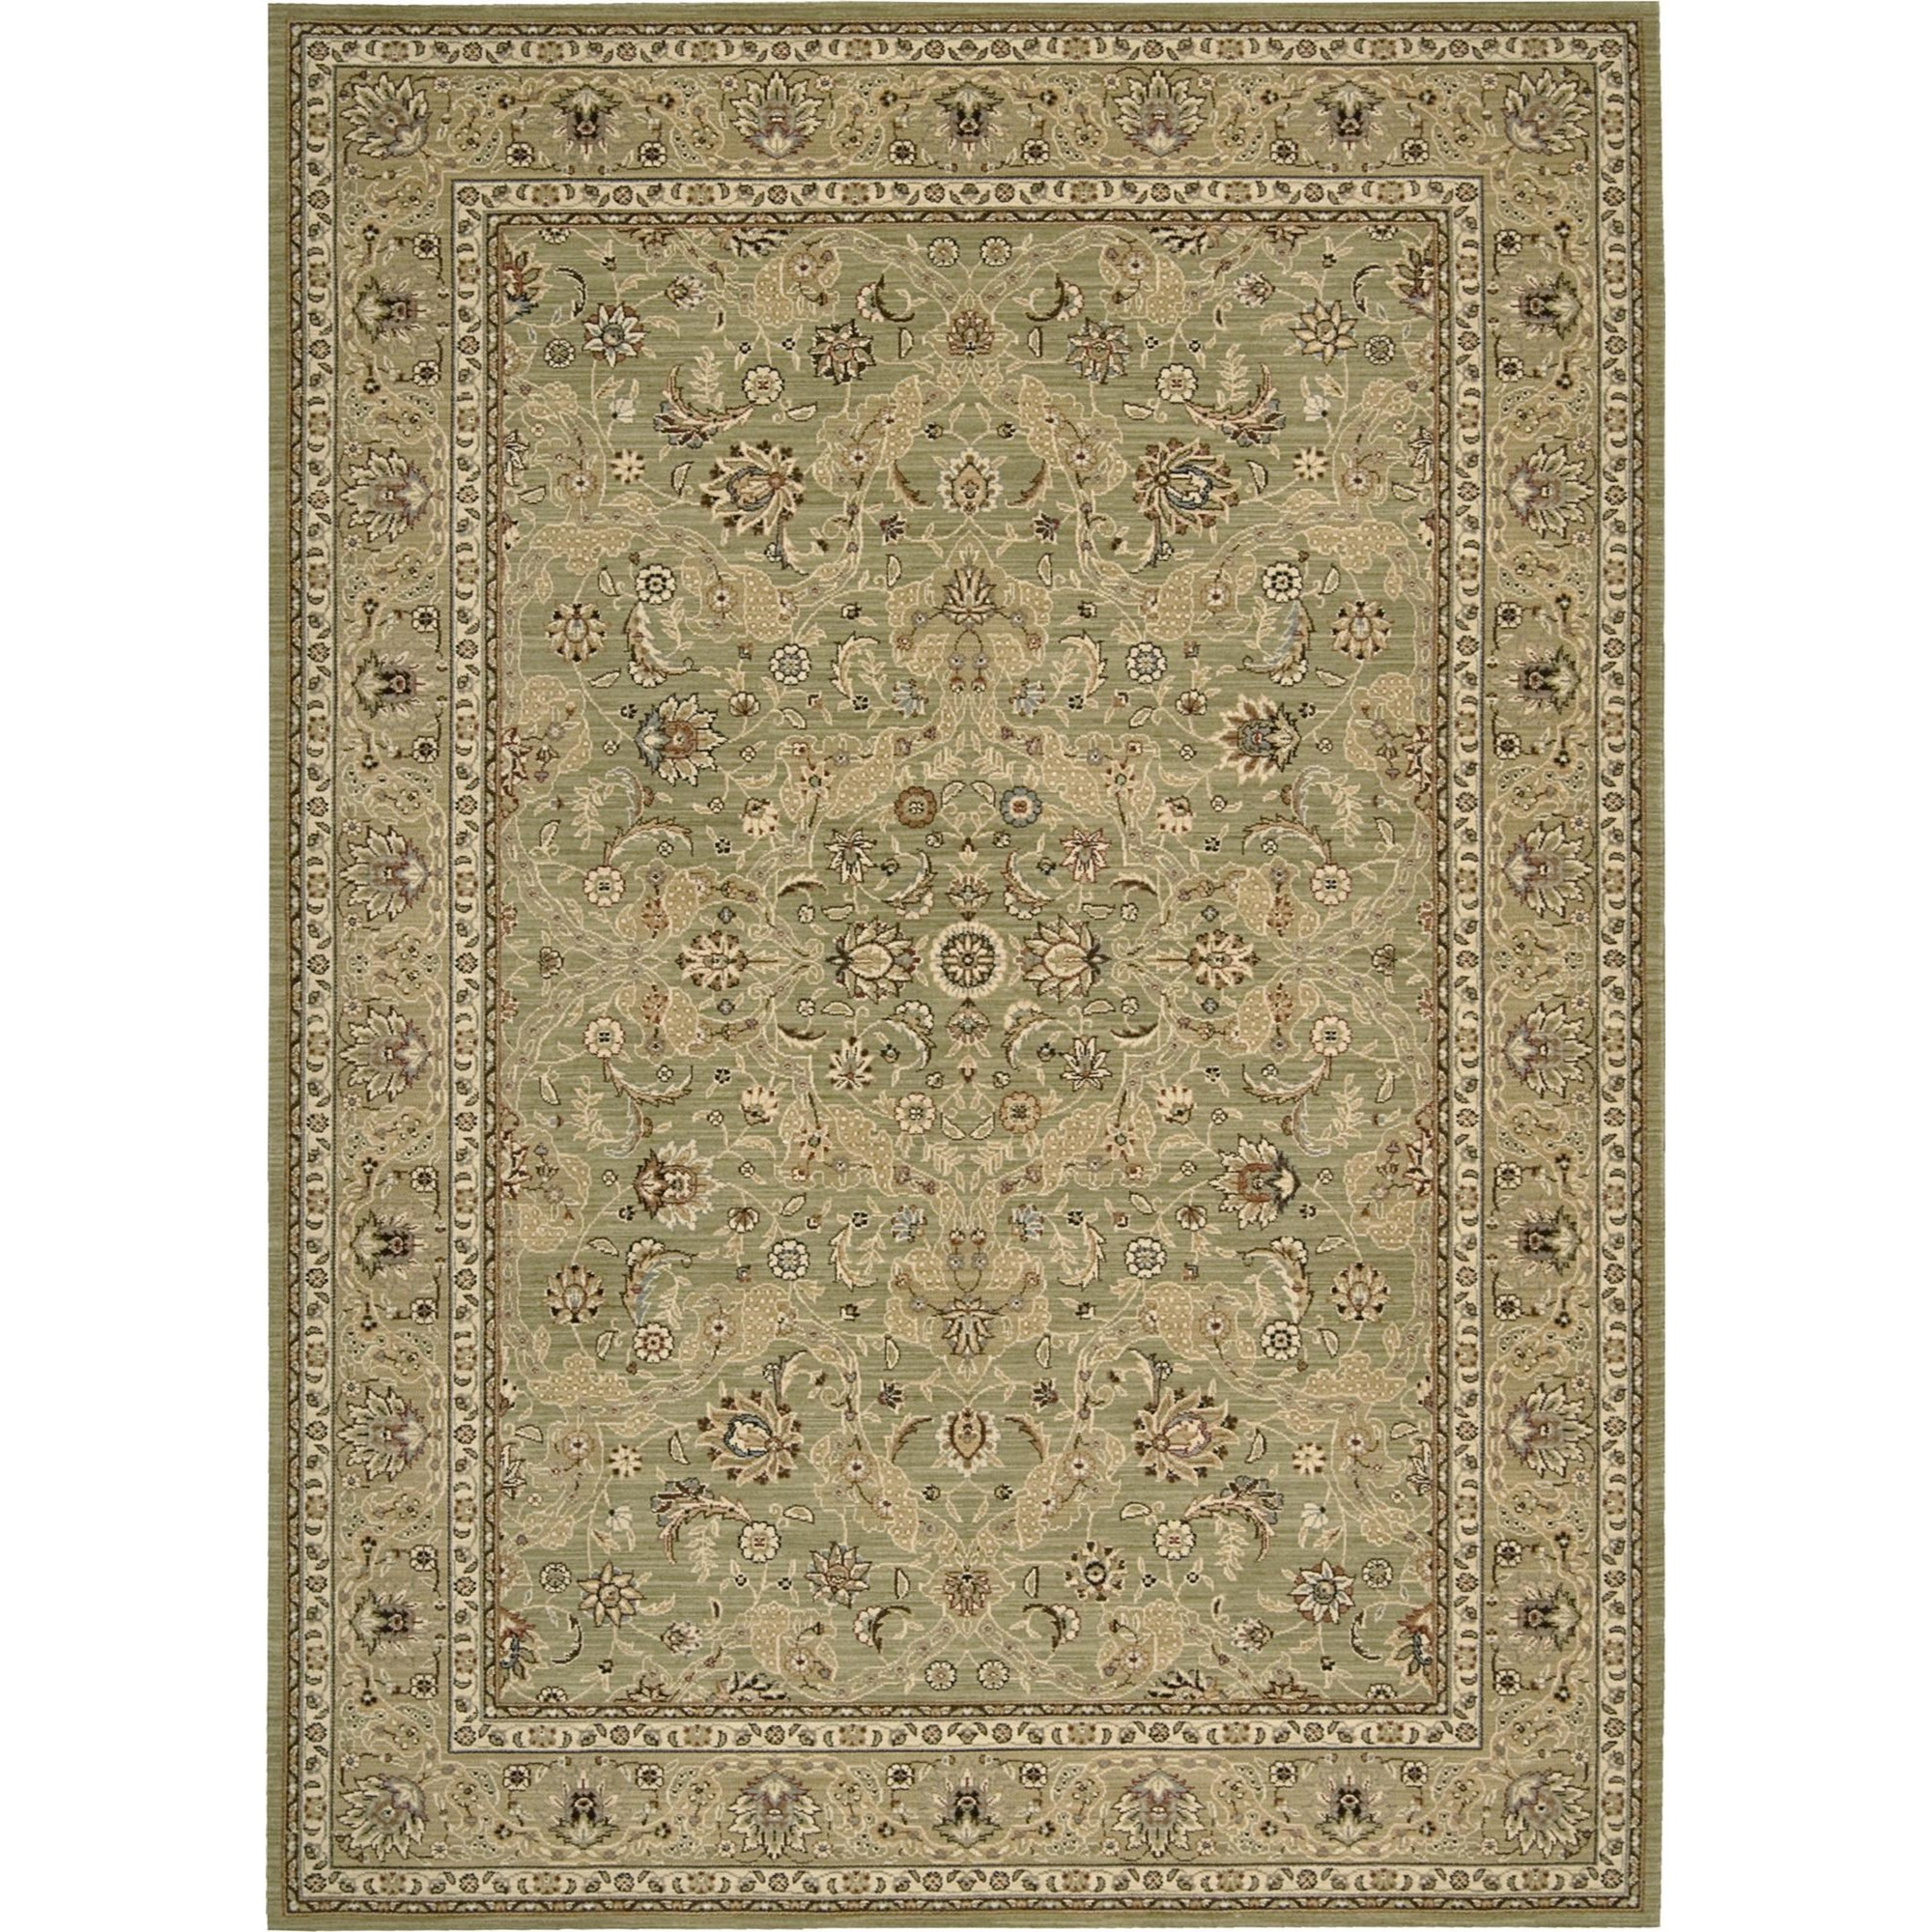 "Nourison Kathy Ireland Home presents Lumiere 7'9"" x 10'10"" Sage Area Rug - Item Number: 03563"